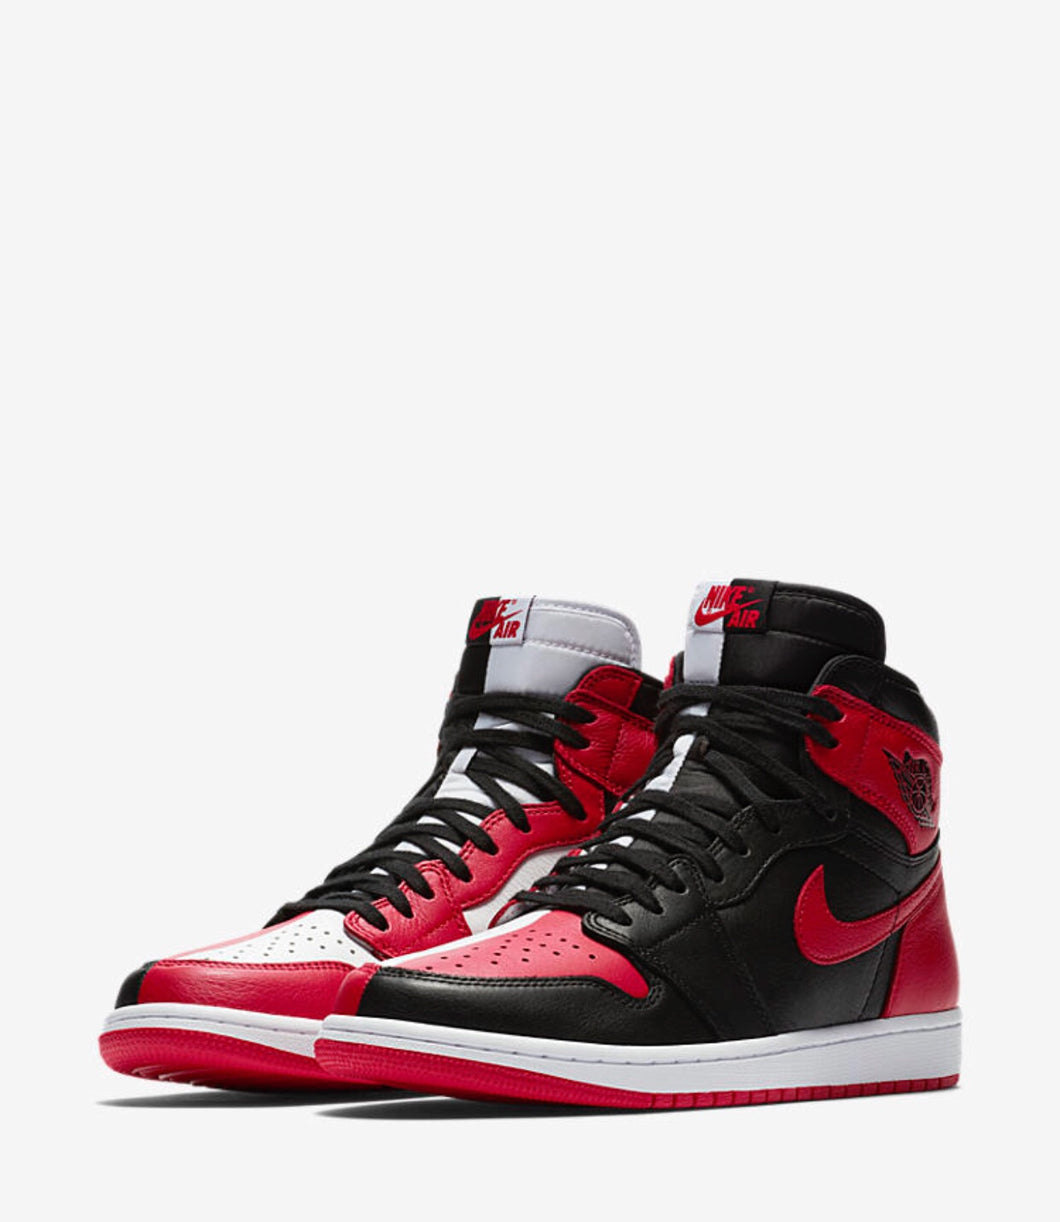 bc3e9d794bce Buy 2 OFF ANY air jordan 1 homage to home CASE AND GET 70% OFF!